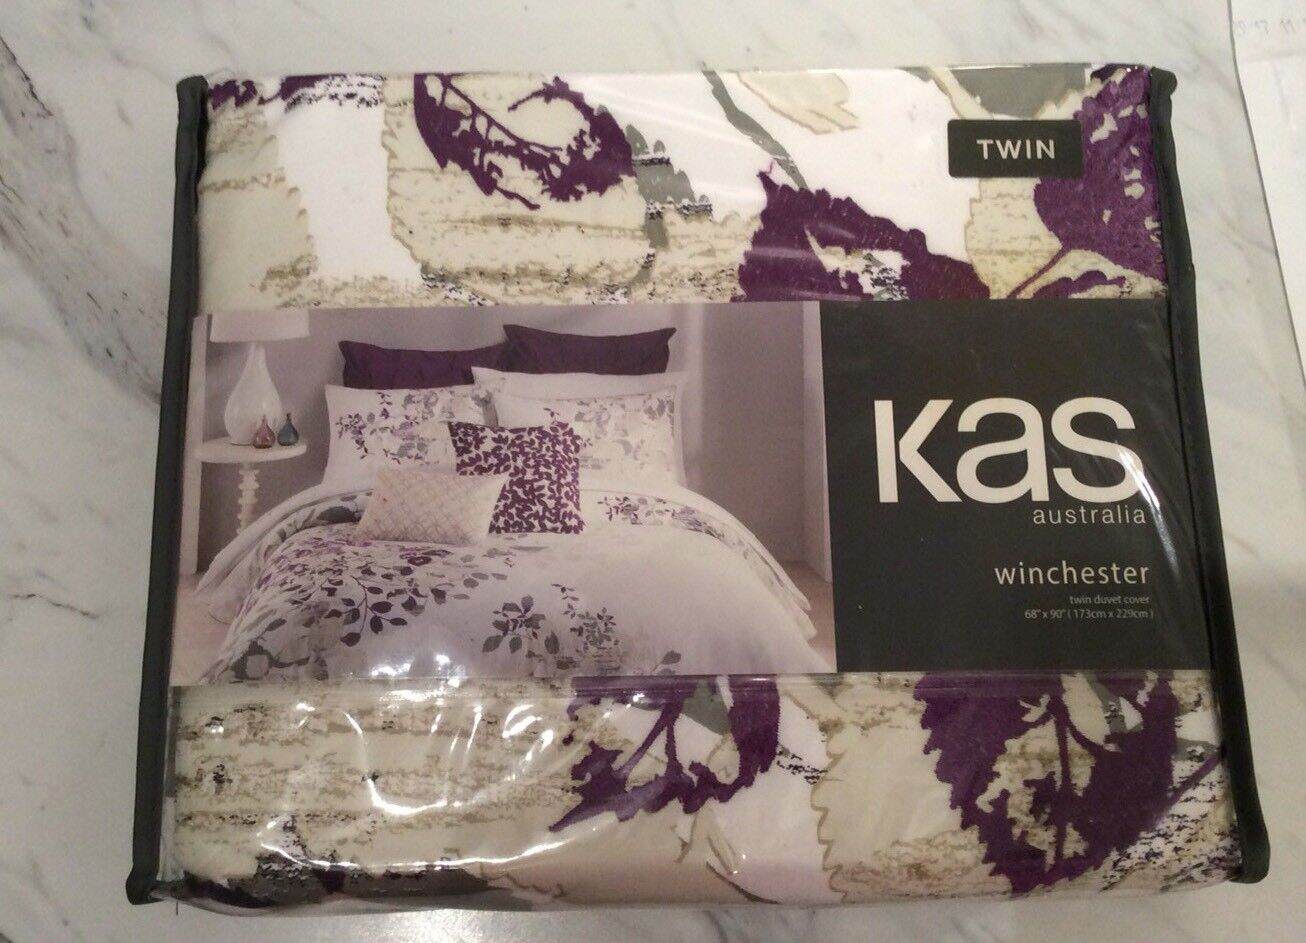 KAS AUSTRALIA WINCHESTER TWIN DUVET COVER WHITE PURPLE NATURE EMBROIDERED